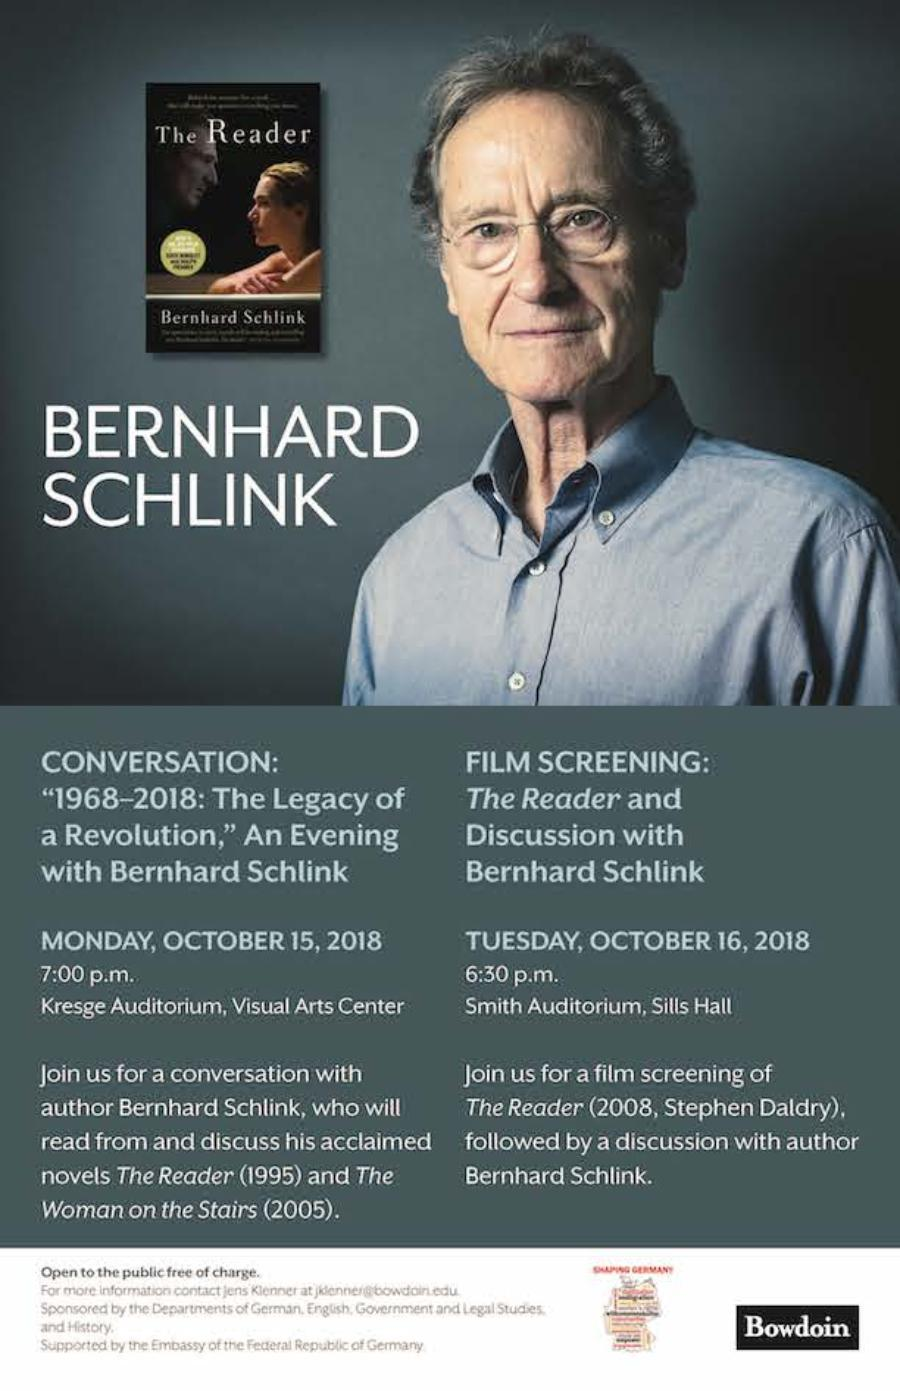 The Reader: Film Screeing and discussion with Bernhard Schlink